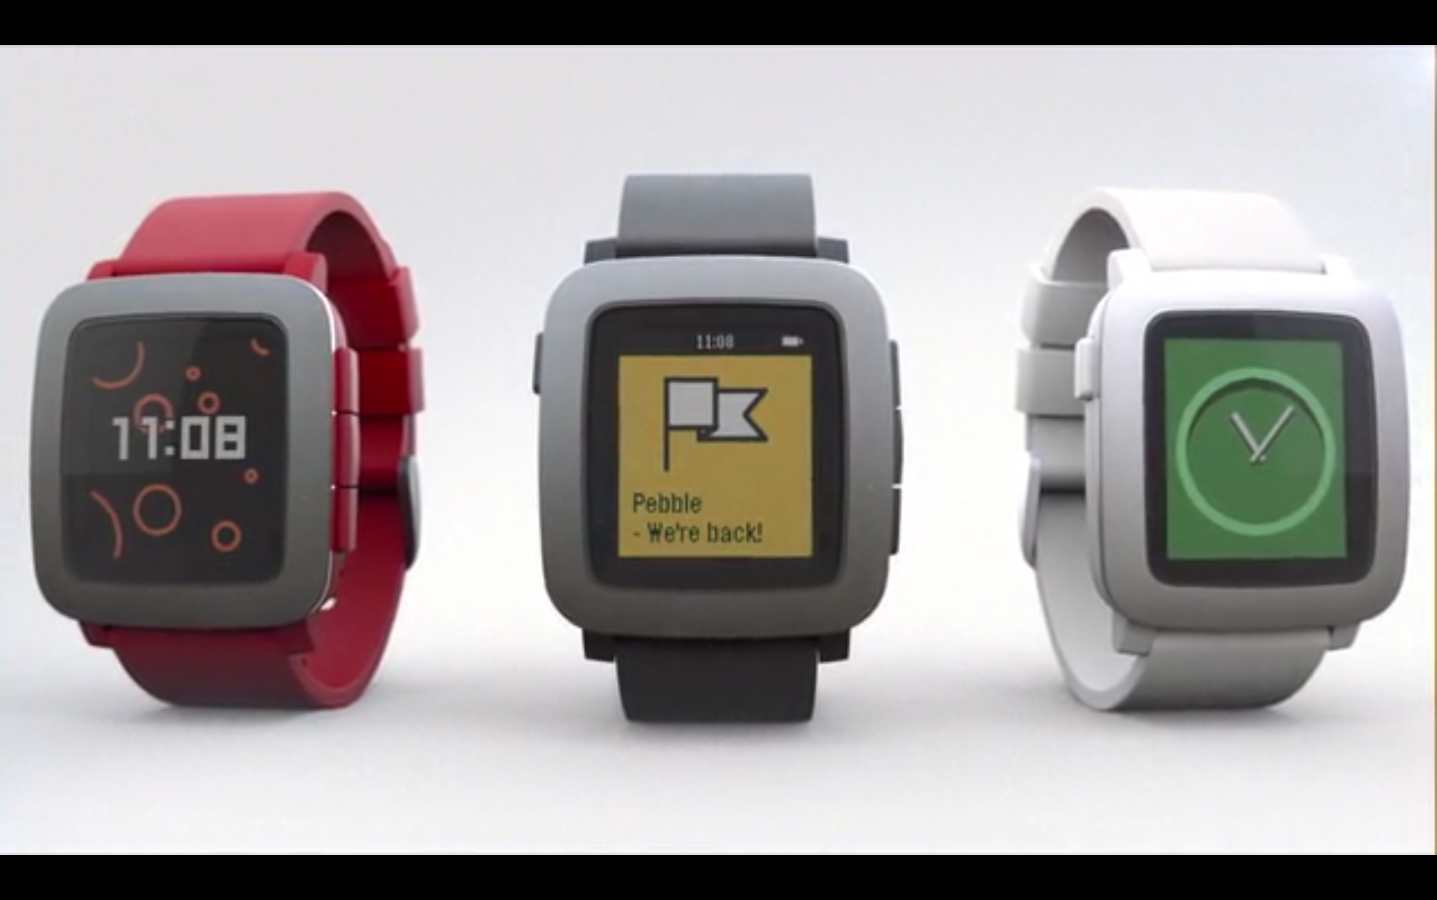 Pebble announces Pebble Time smartwatch